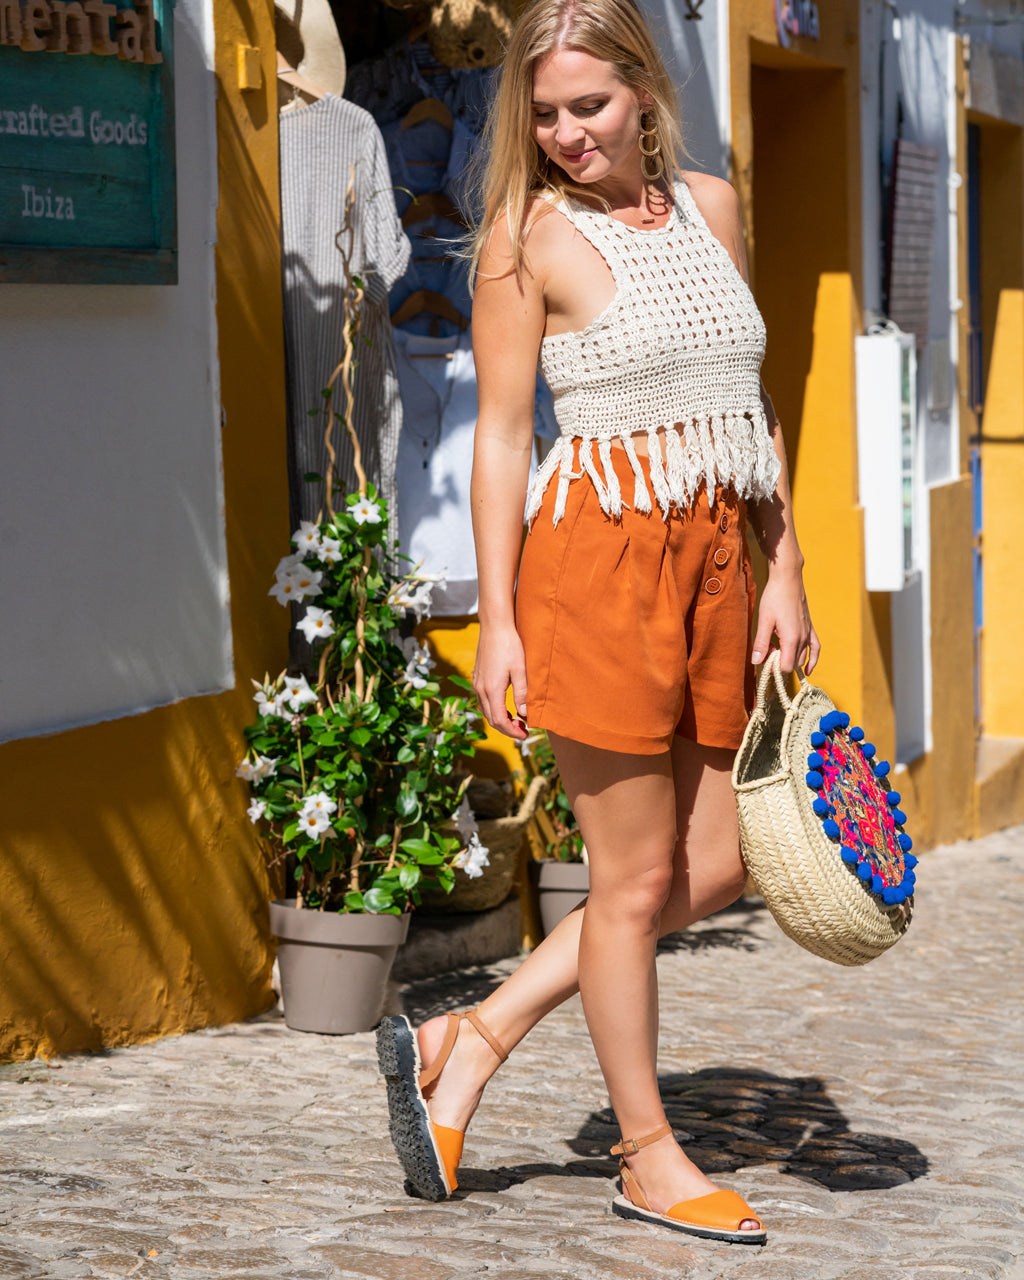 Espadrilles-Avarca Sandals Womens-Leather Viscata Made in Spain